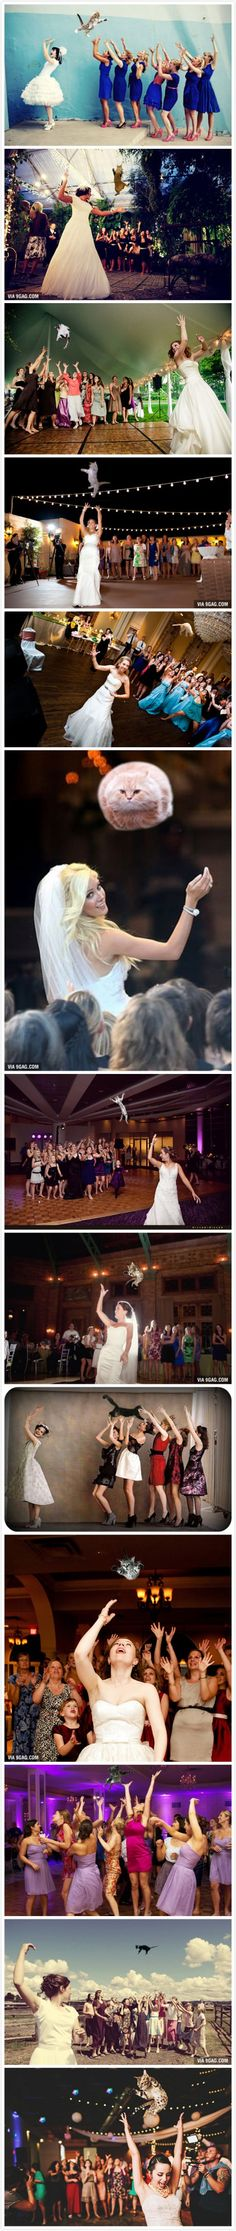 """""""Brides Throwing Cats"""", because bouquets are so yesterday. Thank you to the person that made this."""